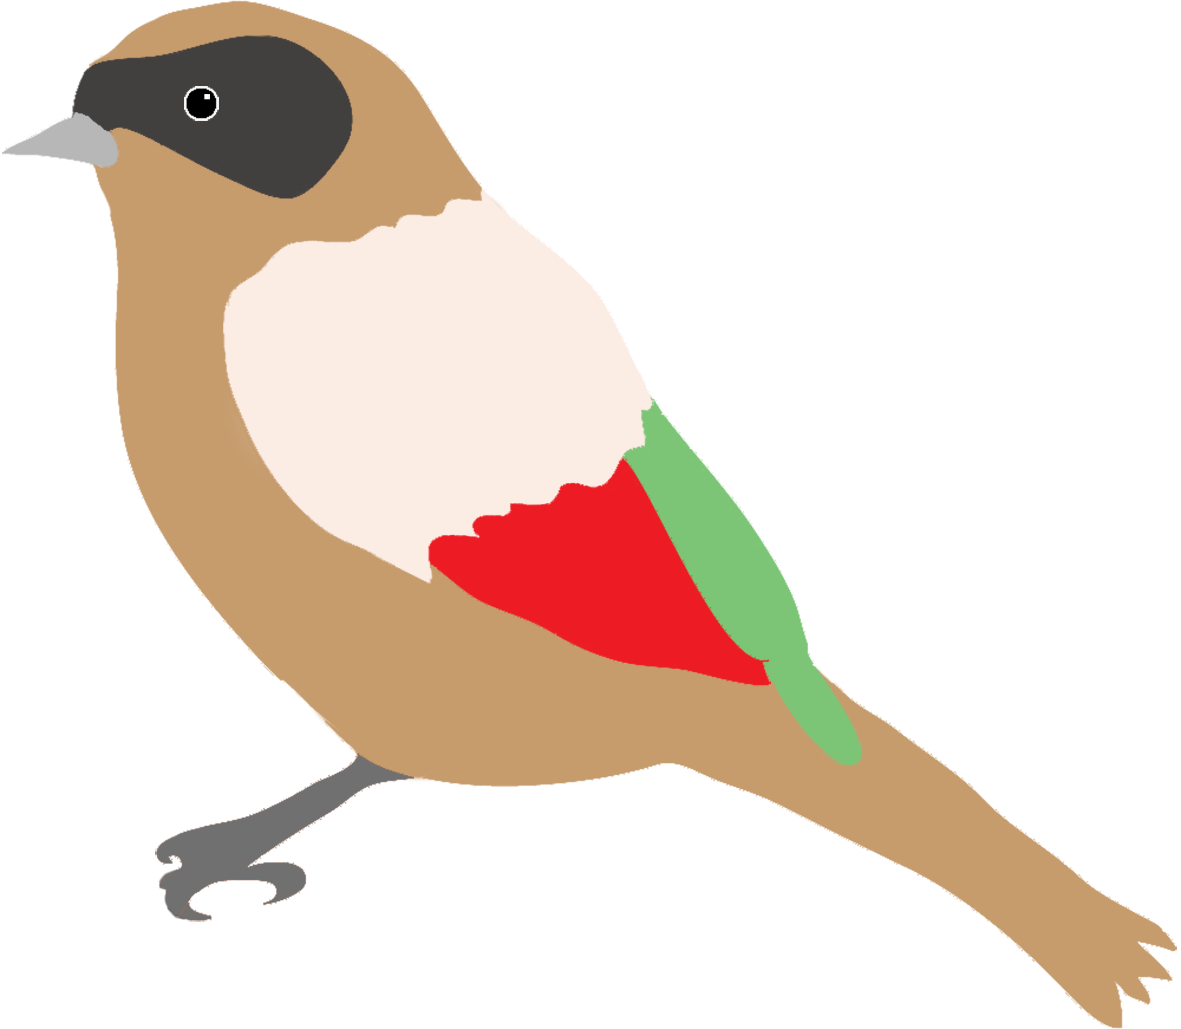 Coy fish clipart stock Colorful Drawings of Birds stock